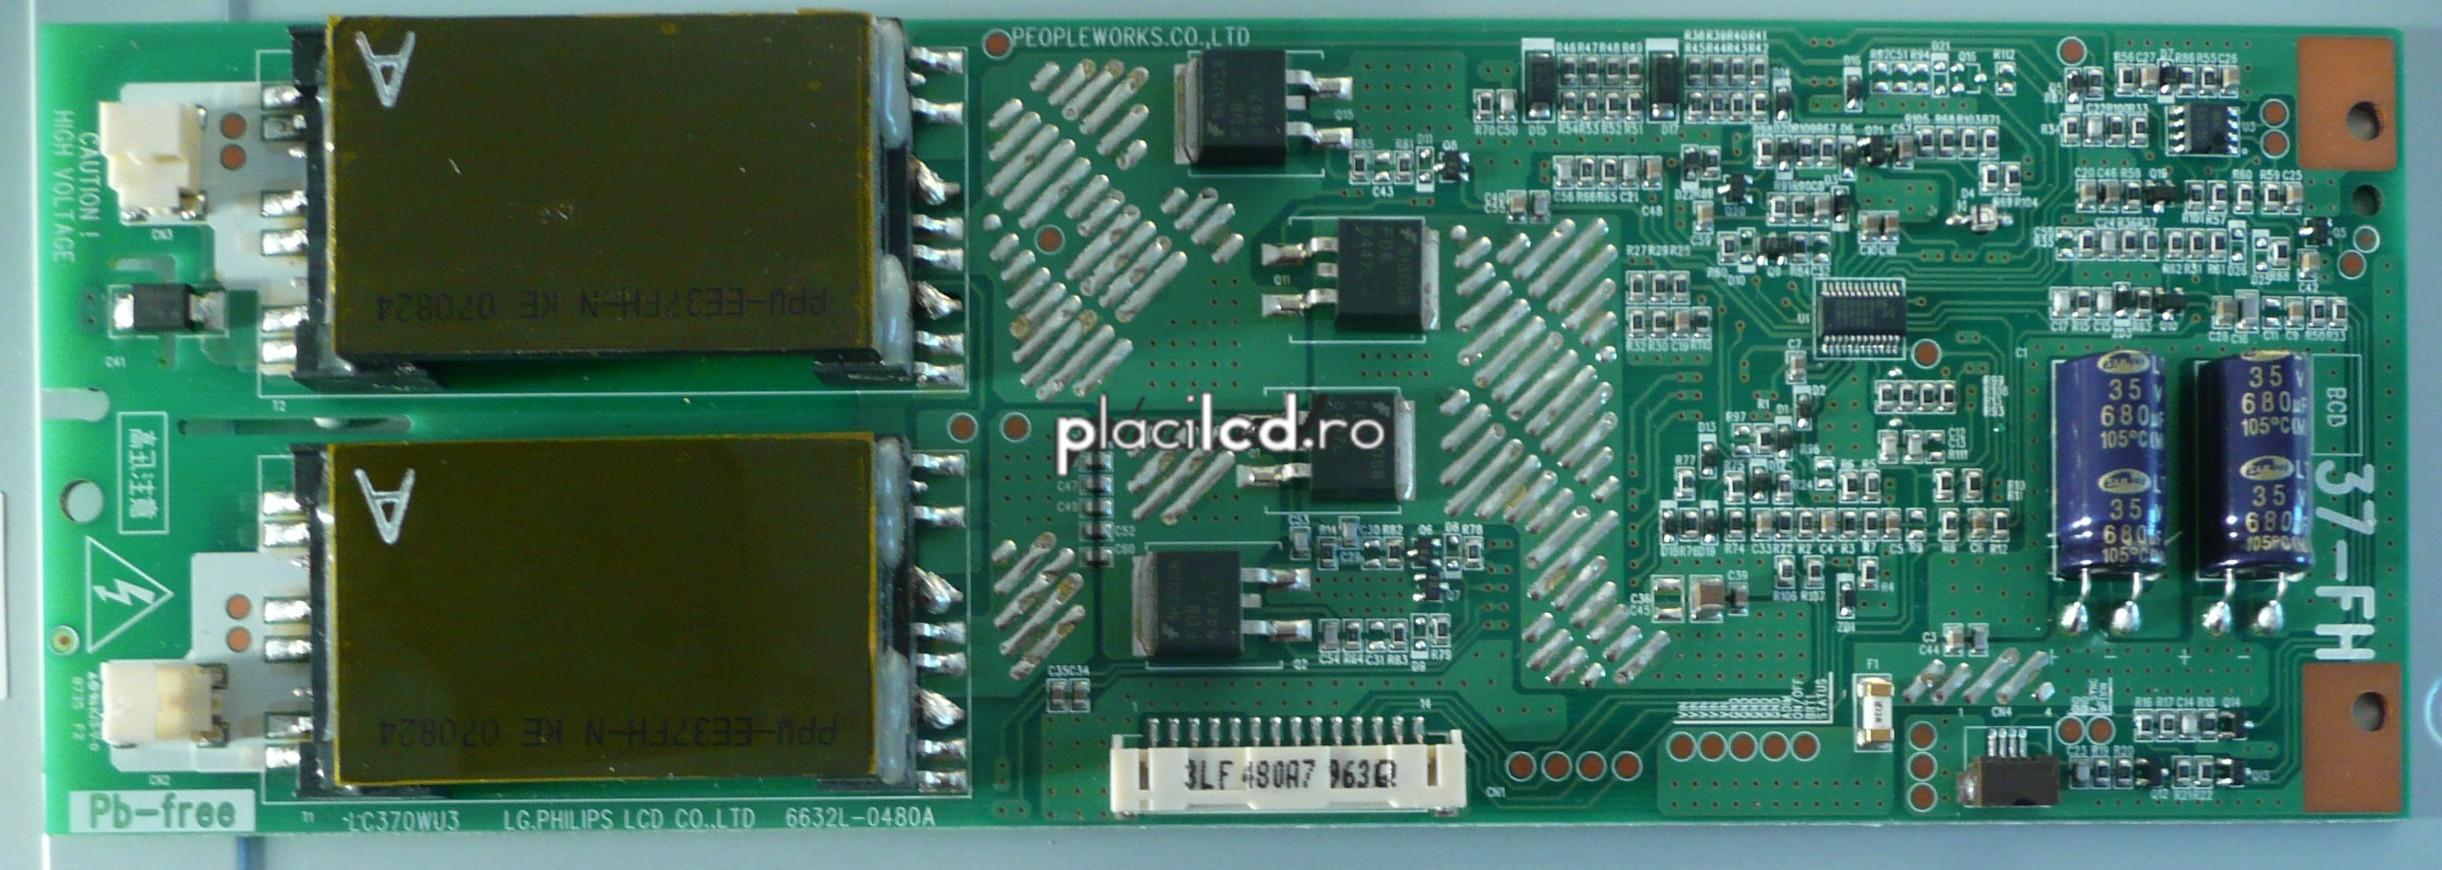 Placa invertoare 6632L-0480A